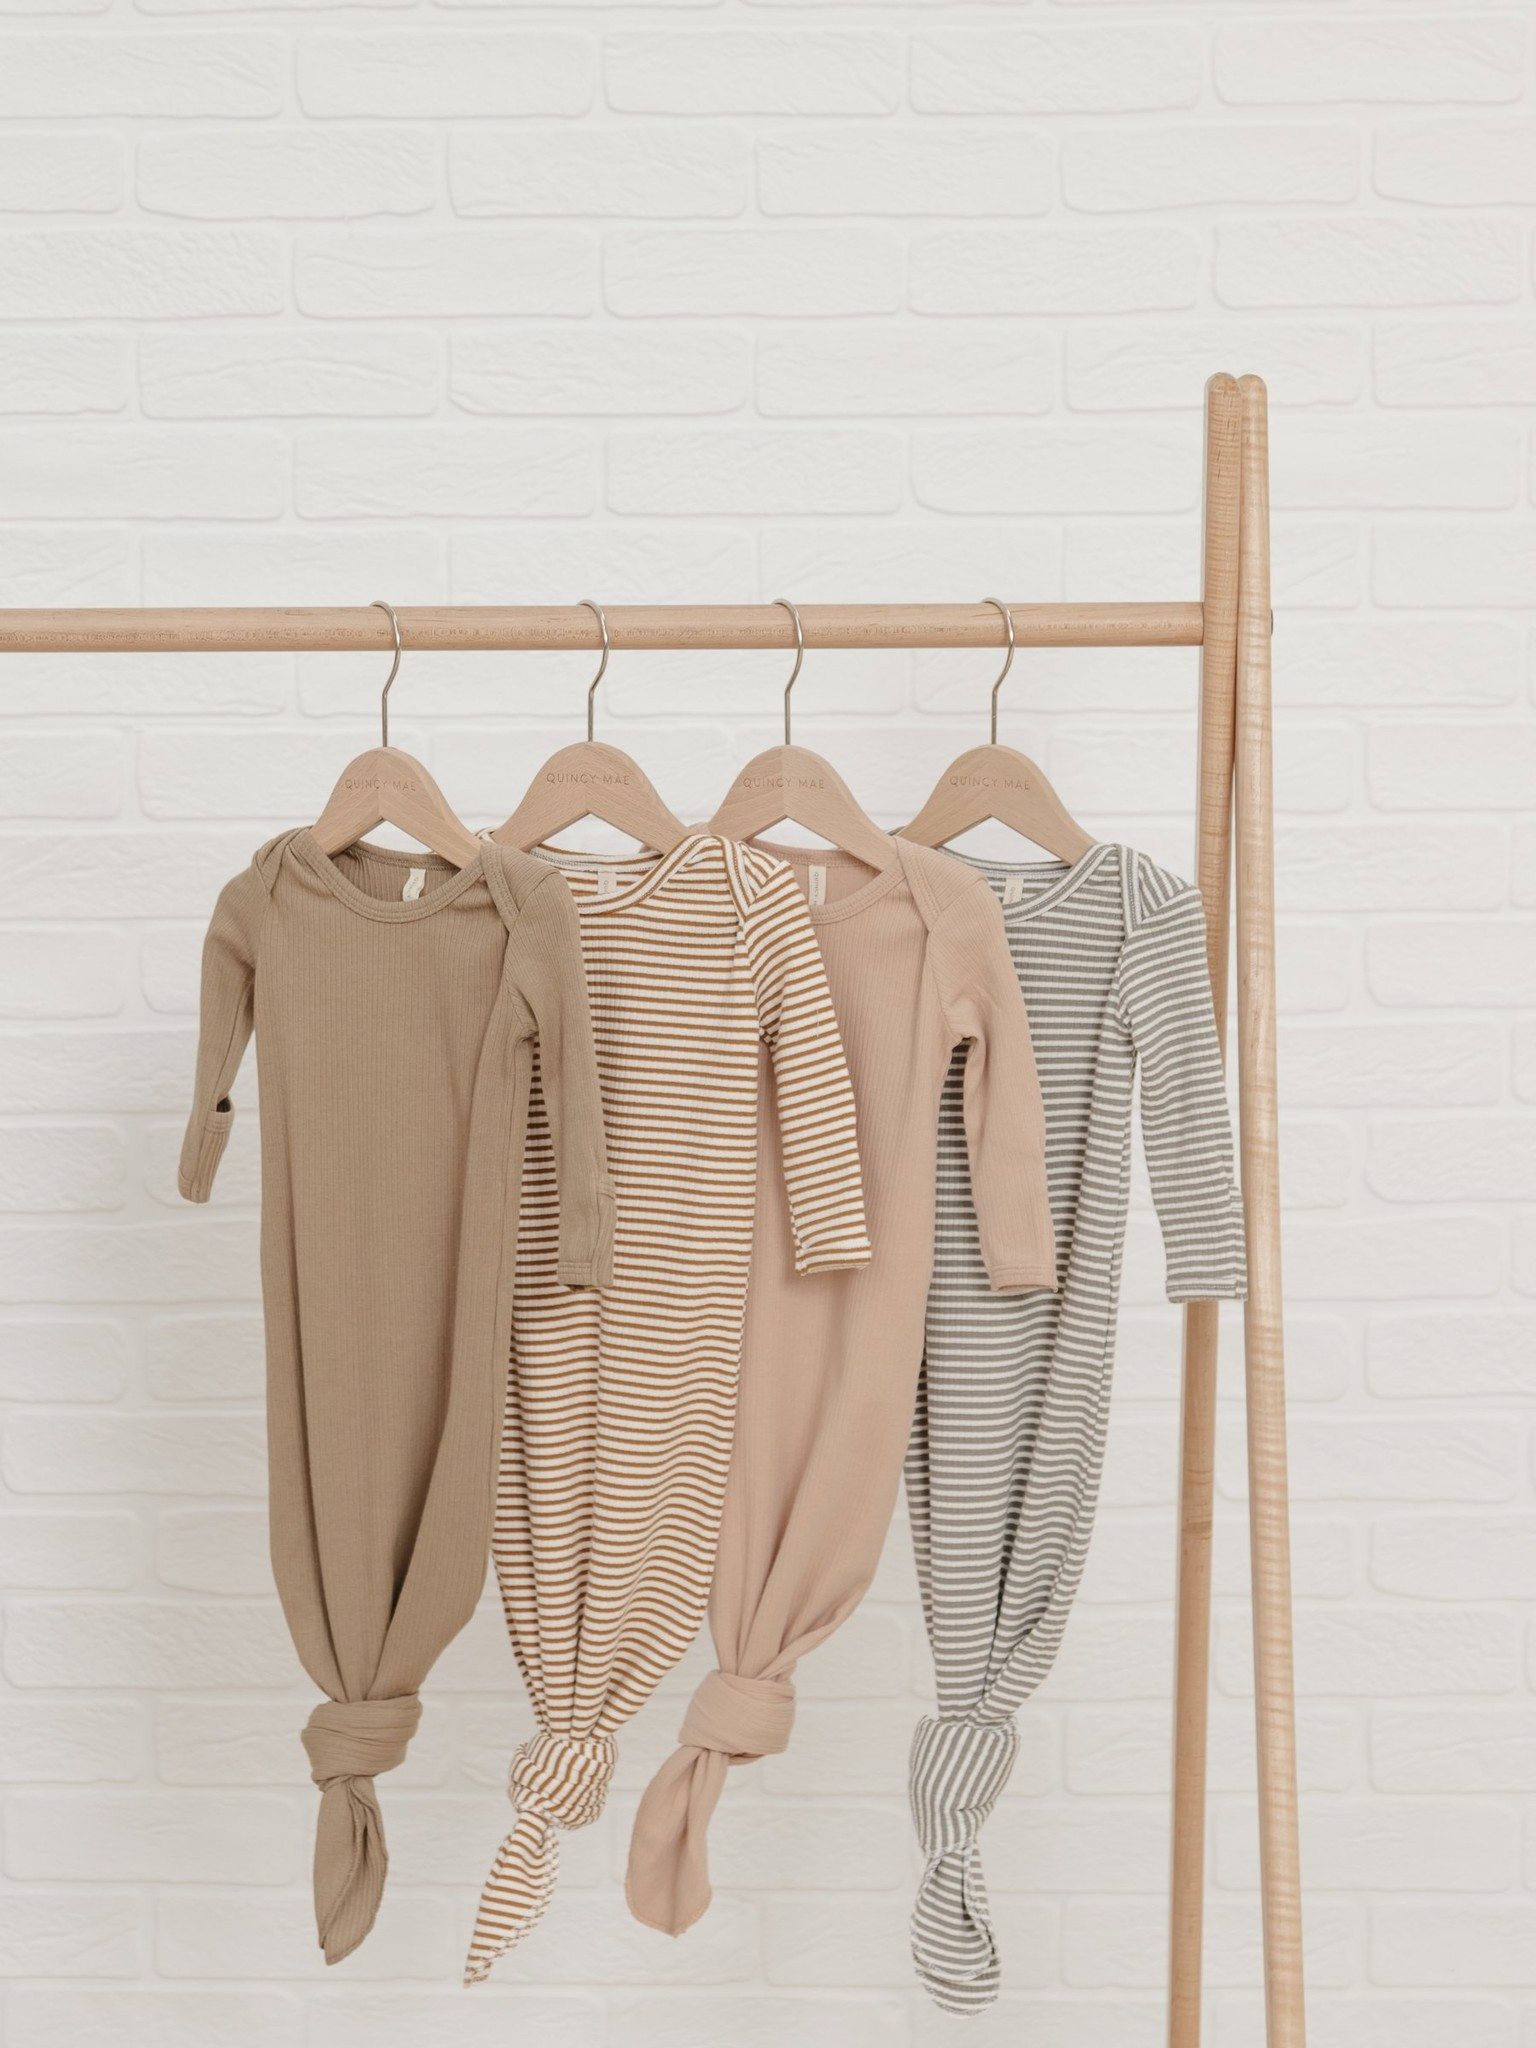 Quincy Mae Quincy Mae Organic Ribbed Jersey Knotted Baby Gown - Olive